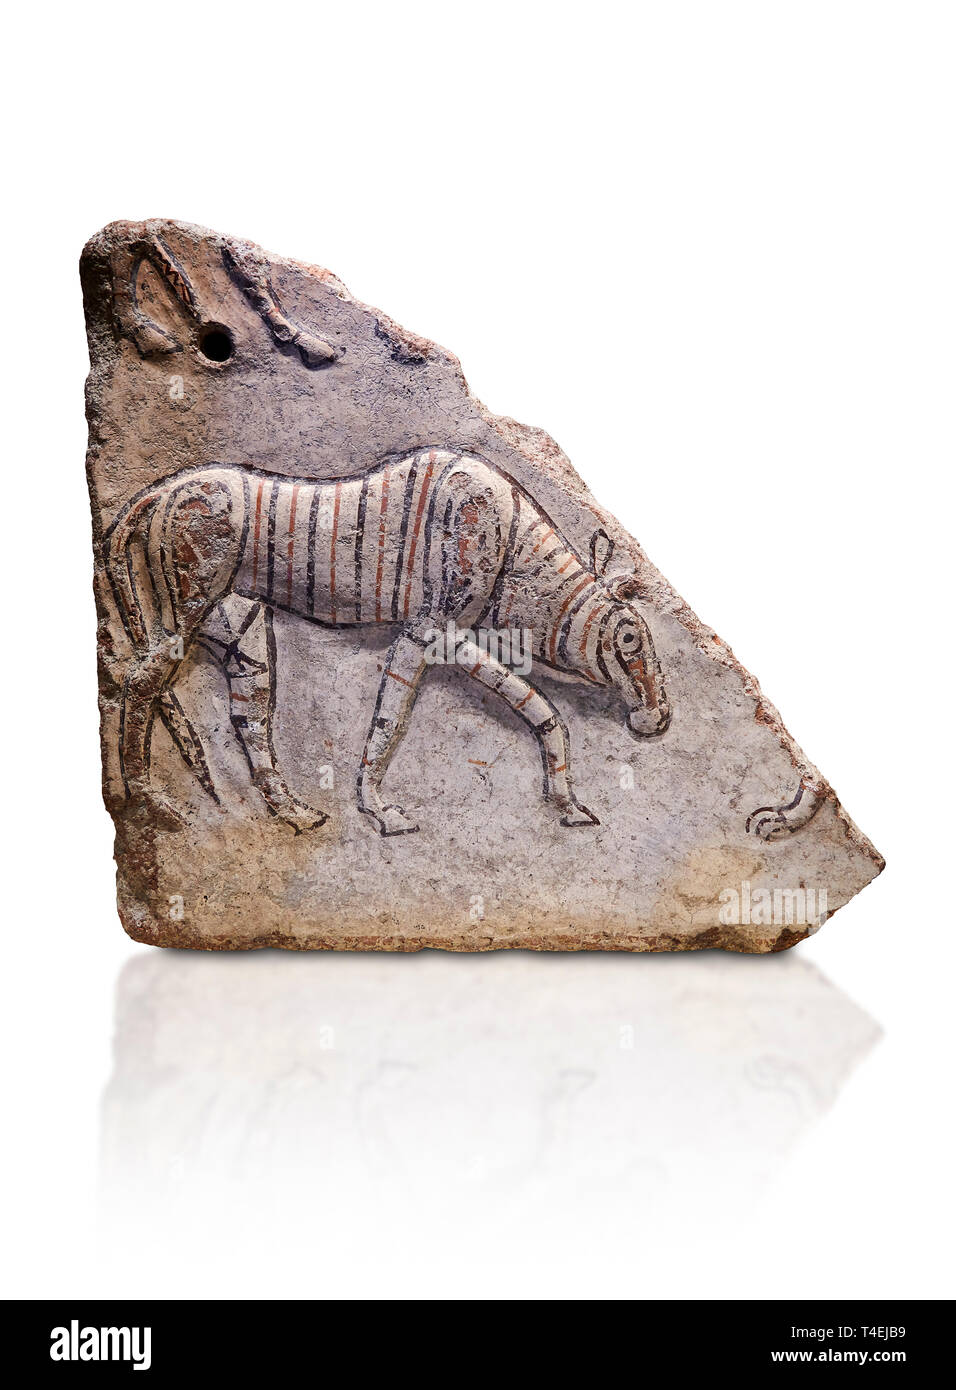 Phrygian relief fragment depicting a walking animal. 8th-7th century BC . Çorum Archaeological Museum, Corum, Turkey - Stock Image